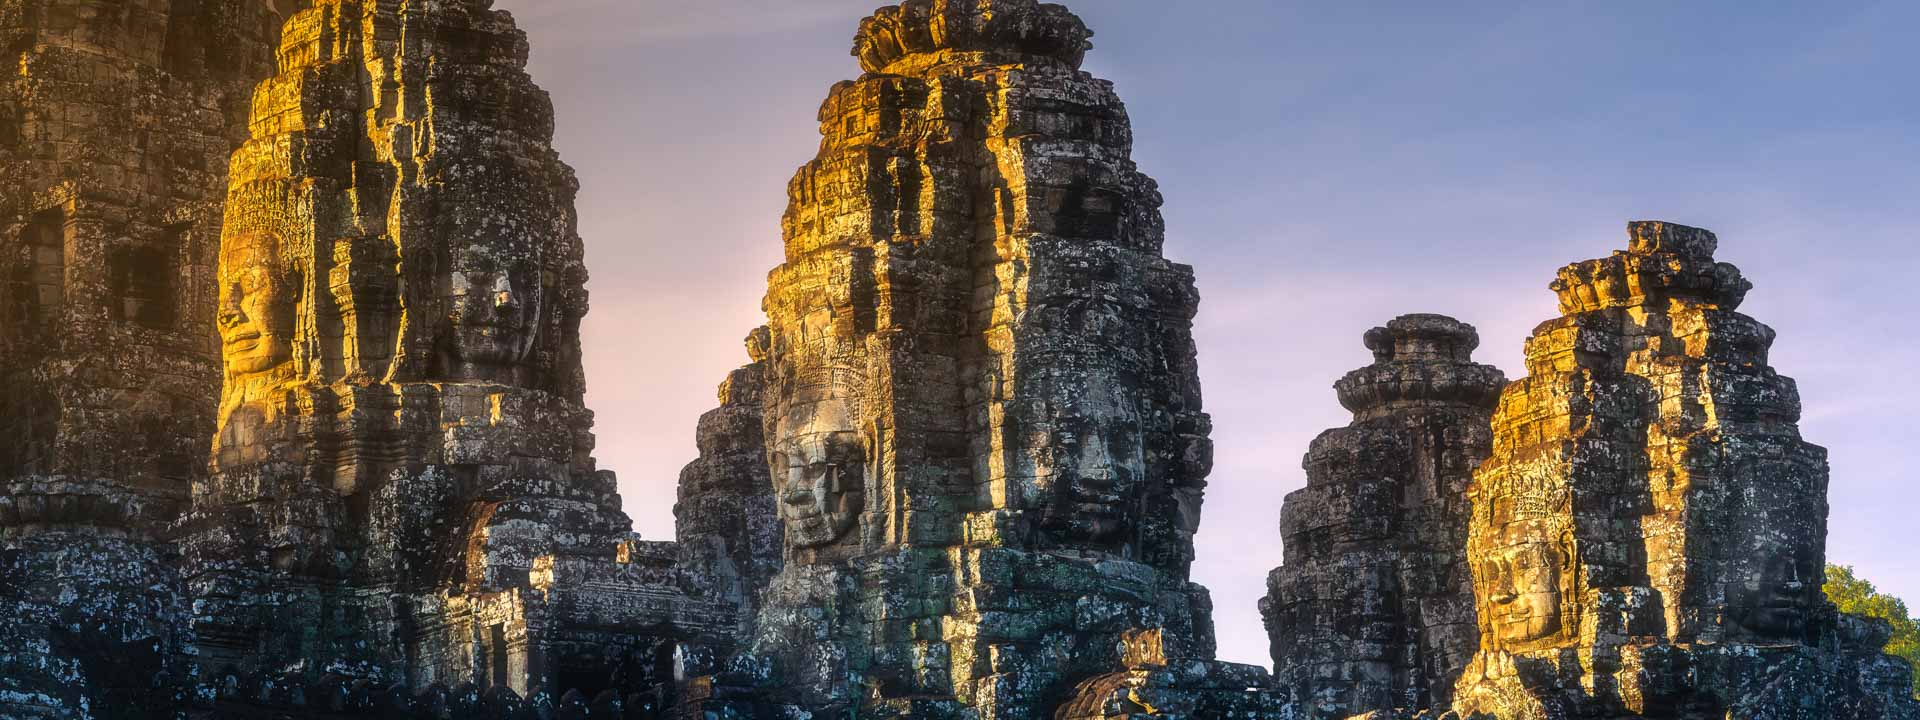 Explore the beauty of Vietnam Cambodia Thailand Tour 20 days